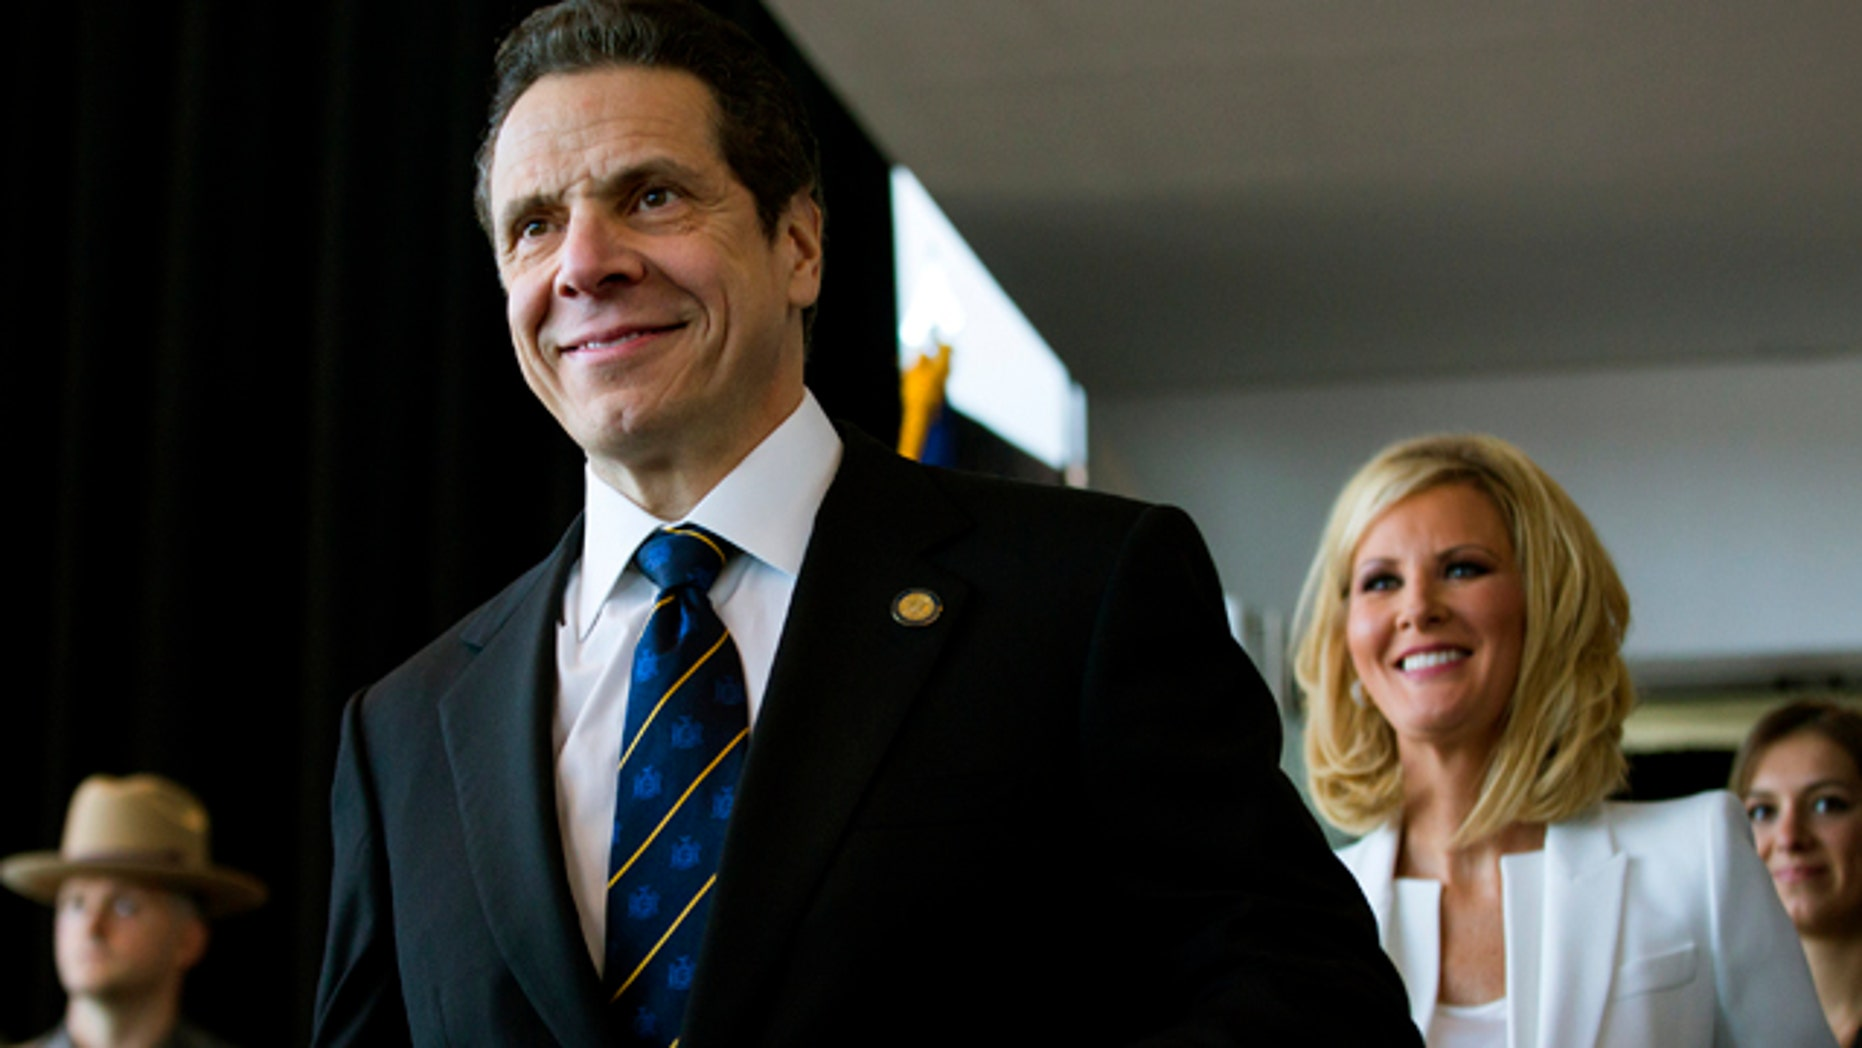 Jan. 1, 2015: New York Gov. Andrew Cuomo arrives for his inaugural ceremony at One World Trade Center in New York. At right is Cuomo's girlfriend Sandra Lee. (AP Photo/Craig Ruttle, Pool)